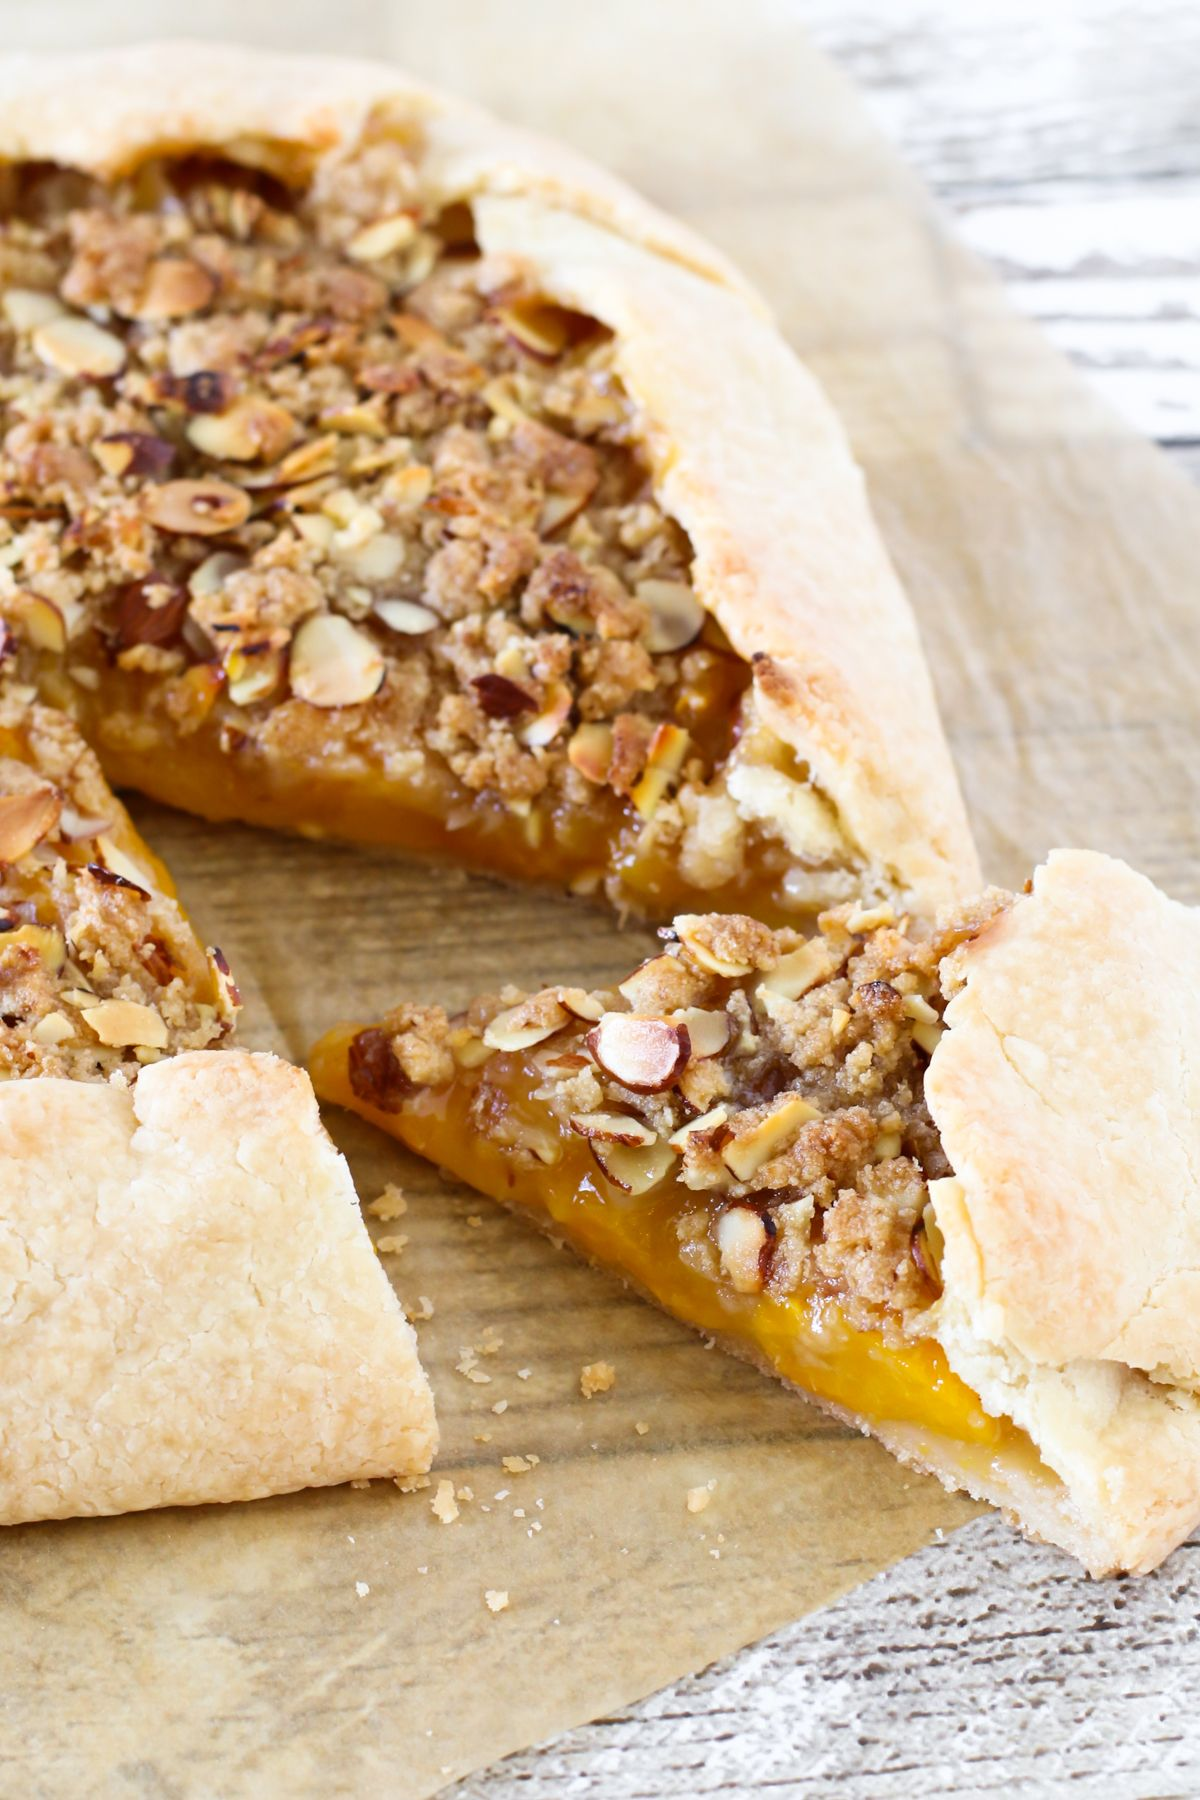 Gluten Free Vegan Peach Almond Crostata. Flaky rustic crust, filled with fresh peaches and topped with a nutty crumb topping. Baked to golden deliciousness!